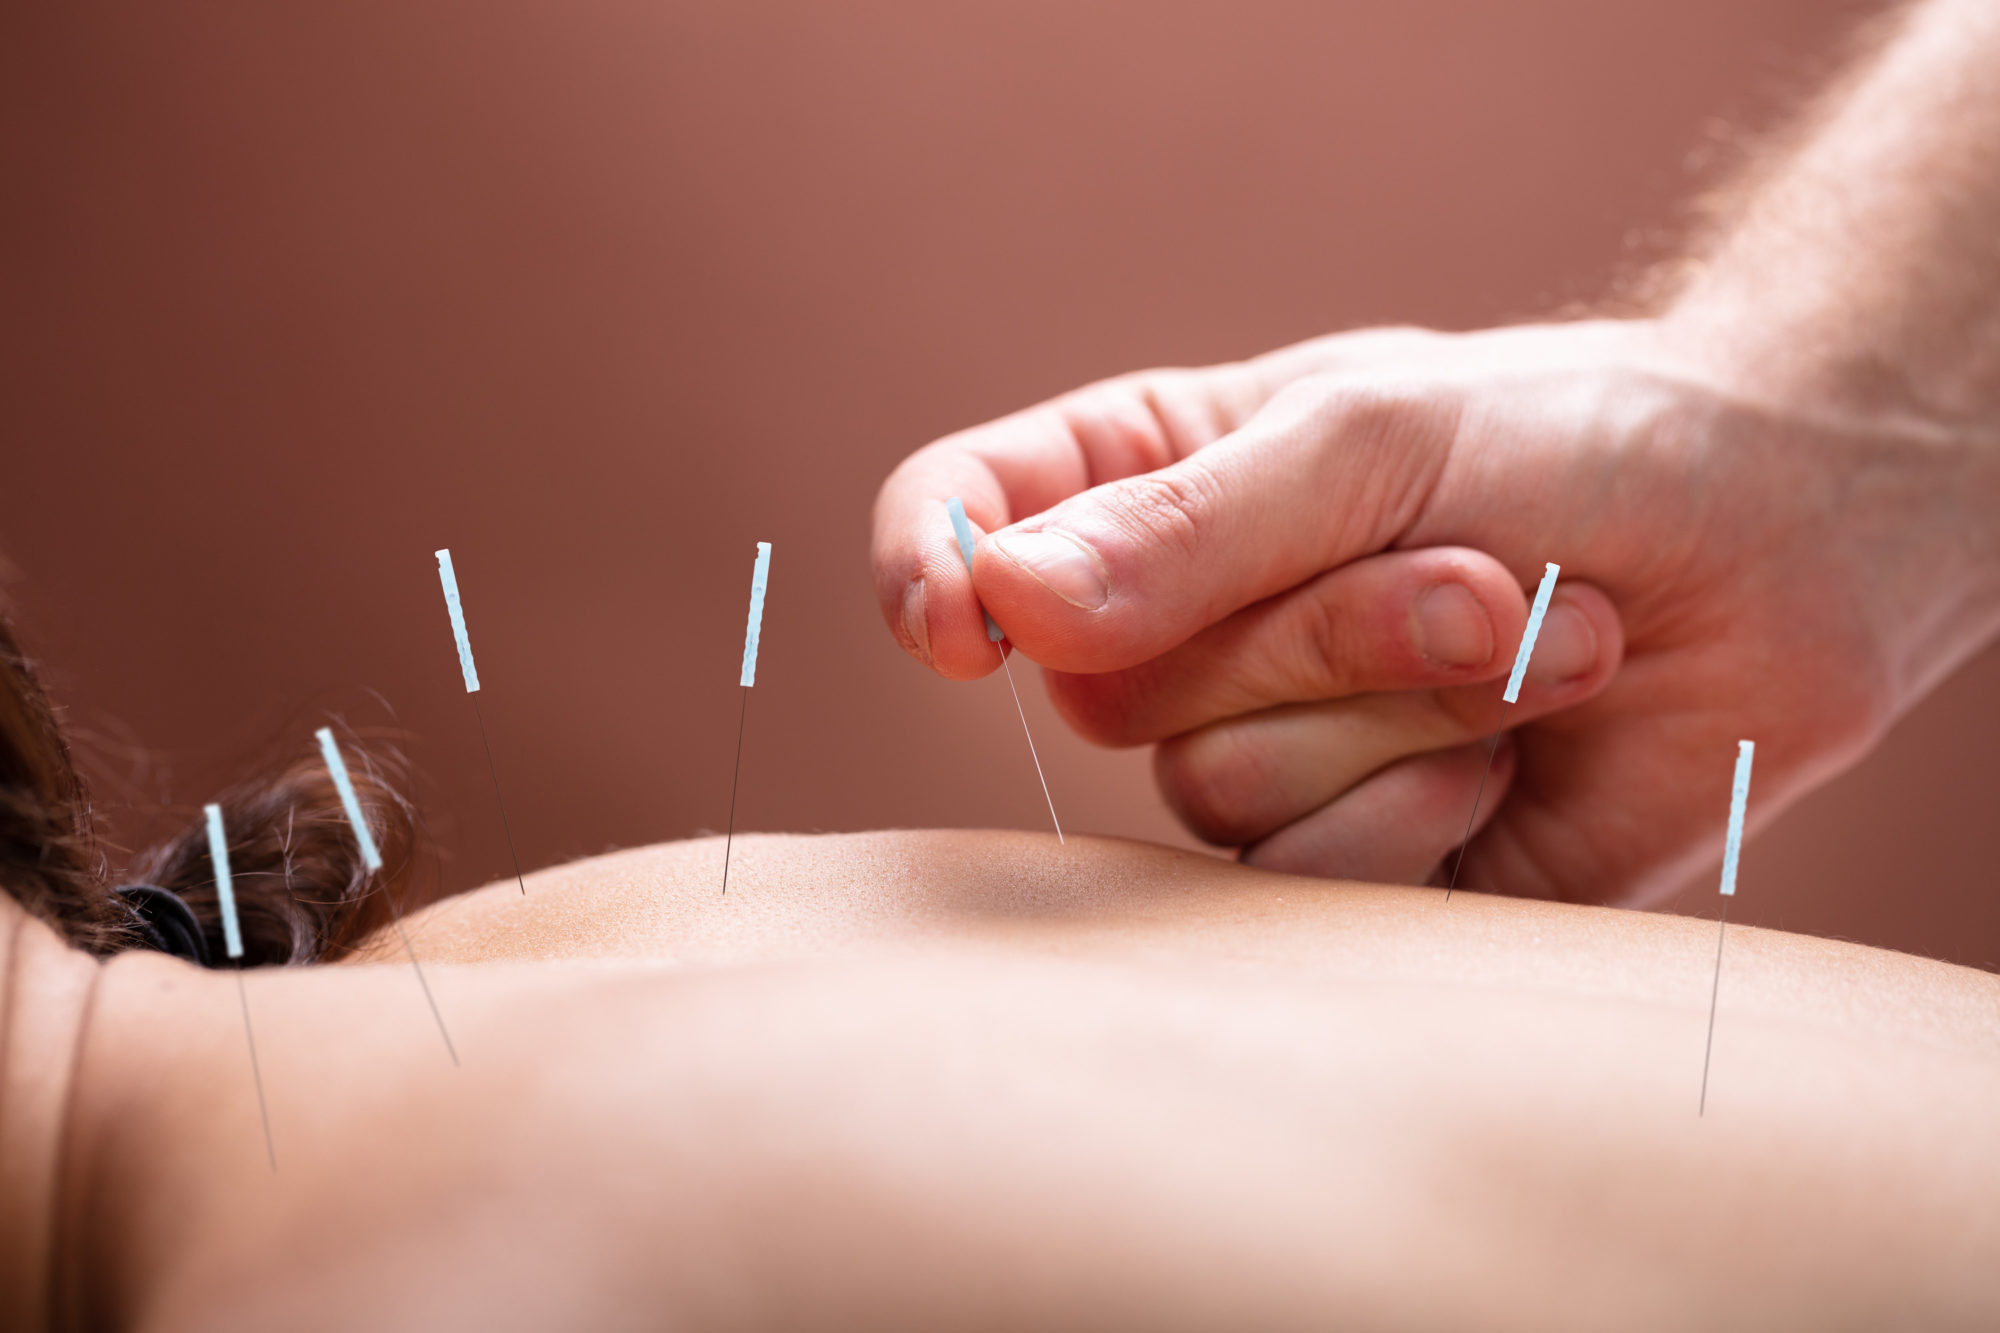 acupuncture on back